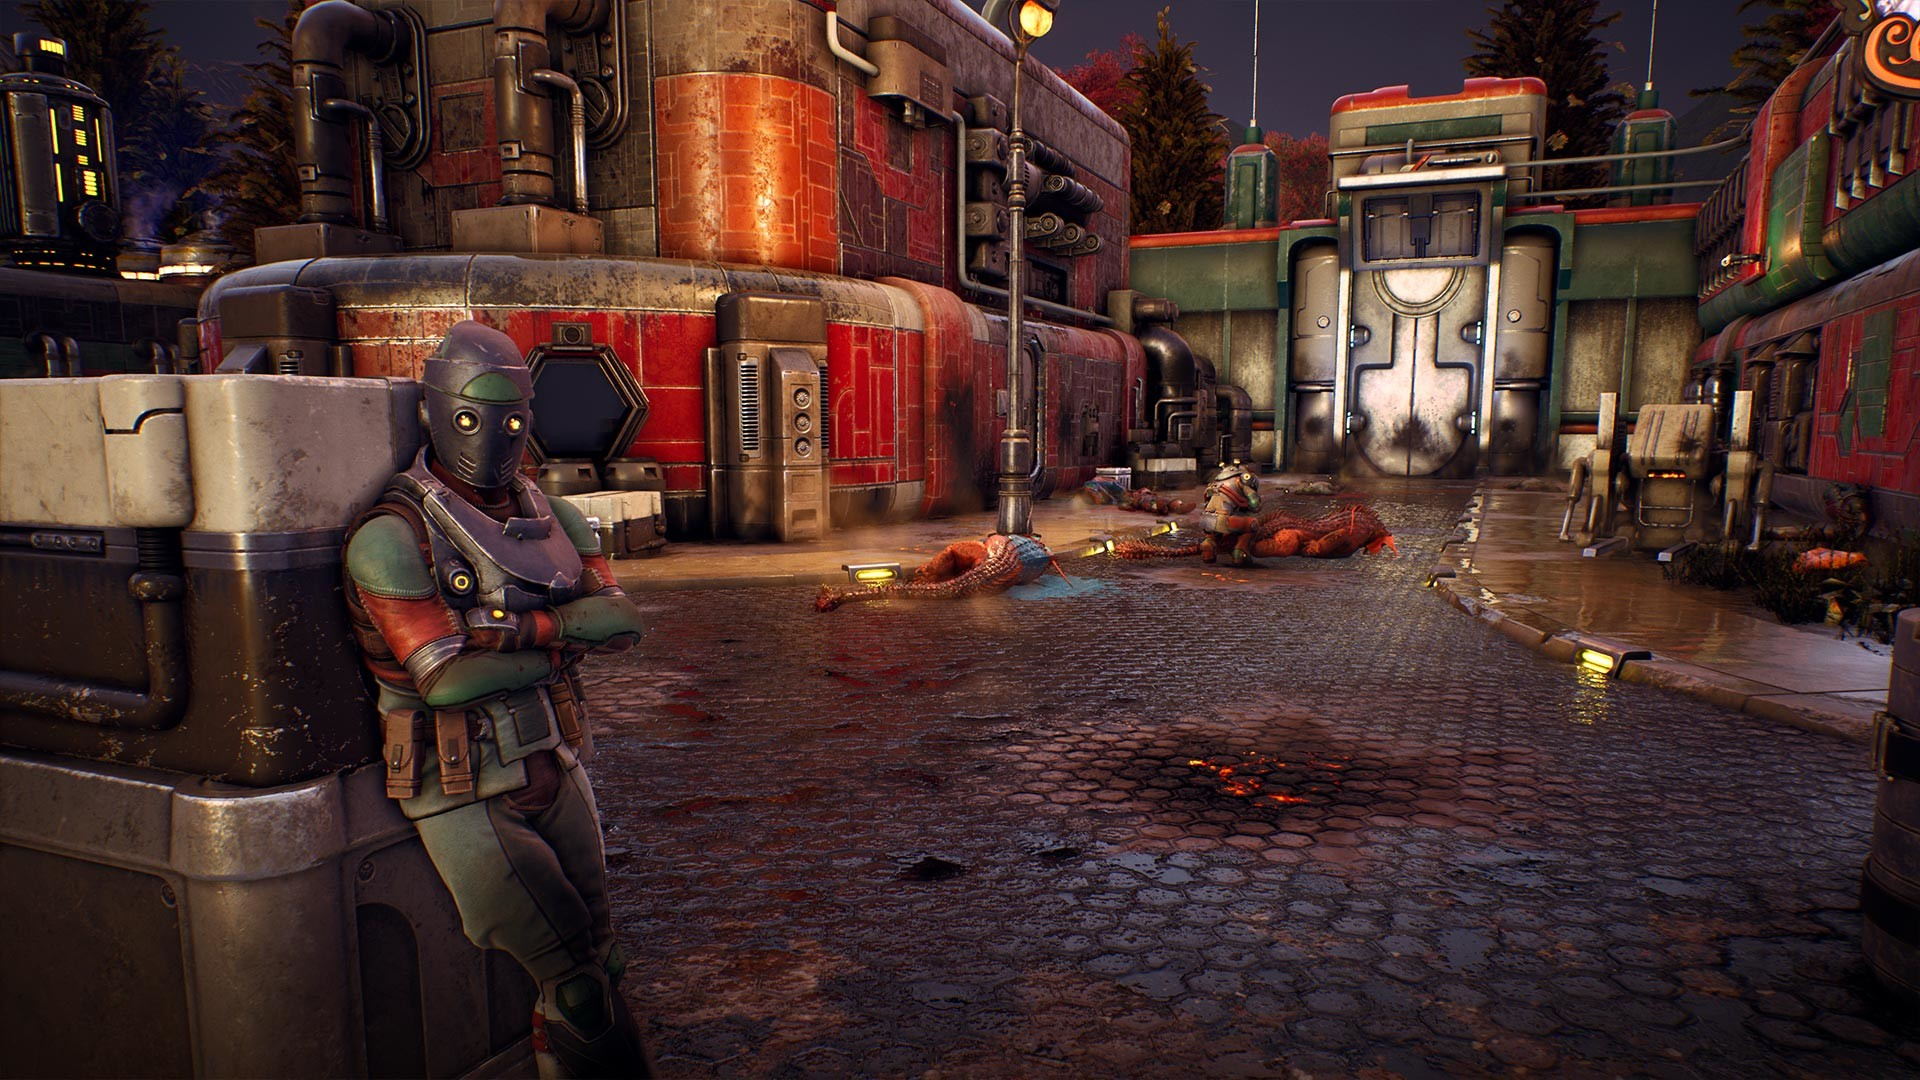 The Outer Worlds Switch Version Is Now Slated For June 5 Neowin